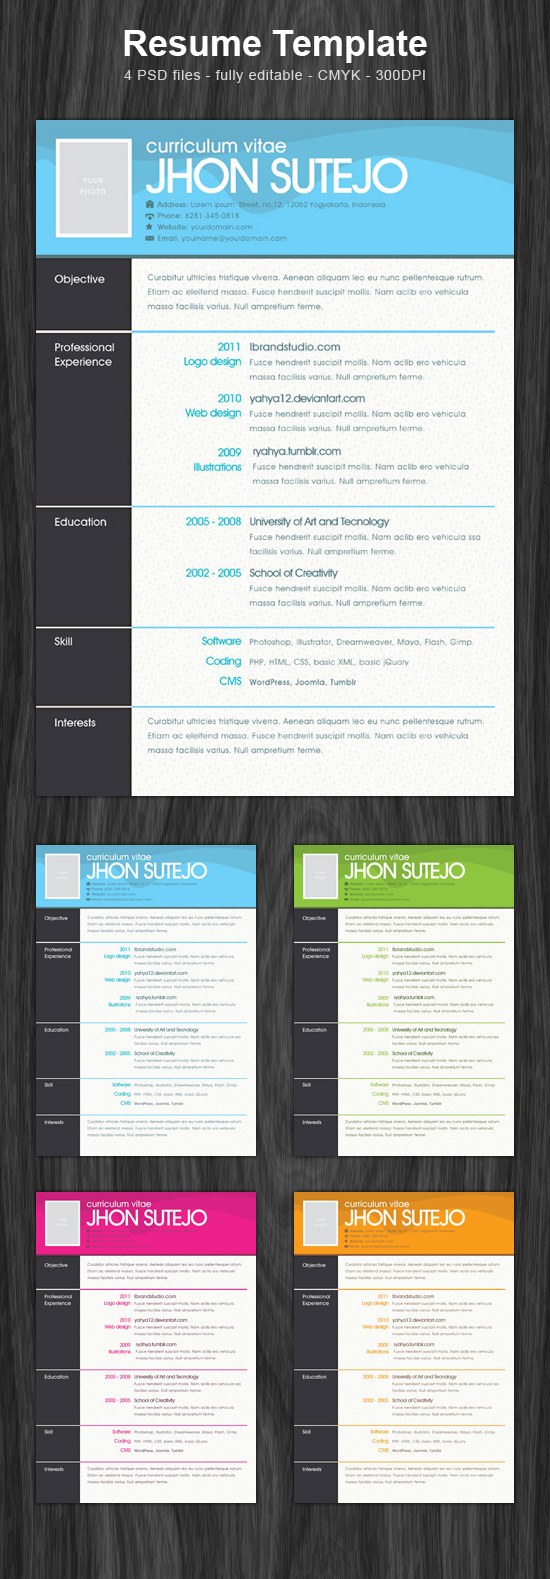 one page resume template psd open resume templates. Black Bedroom Furniture Sets. Home Design Ideas